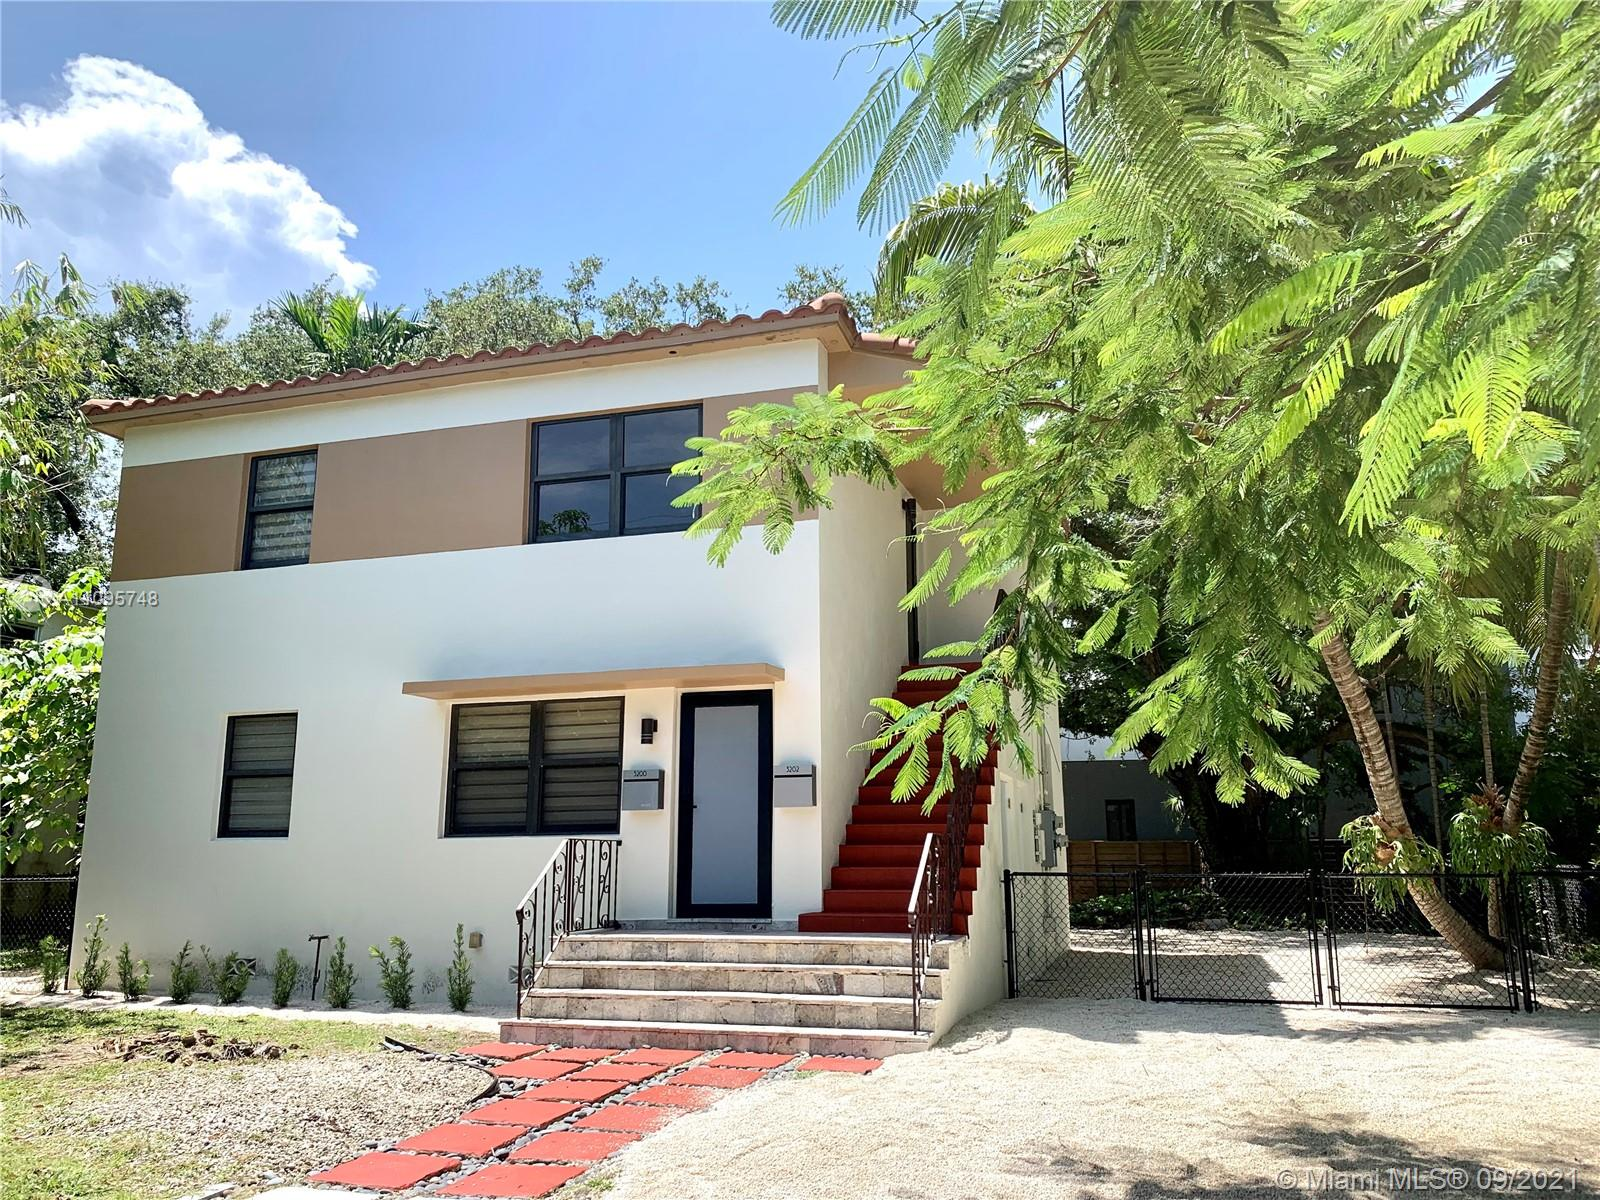 Peaceful & pristine Coconut Grove 1st floor garden duplex unit framed by towering oaks and lush tropical foliage. Impact windows shine light in from all angles, hardwood floors, updated kitchen & bath, brand new appliances, freshly painted inside and out.  Huge fenced yard, 2 parking spaces PLUS guest parking, separate laundry room services both units. Pet friendly. Walk/stroll/ride to all the Grove has to offer, a few blocks from shops, entertainment, restaurants, the waterfront, marinas & more!